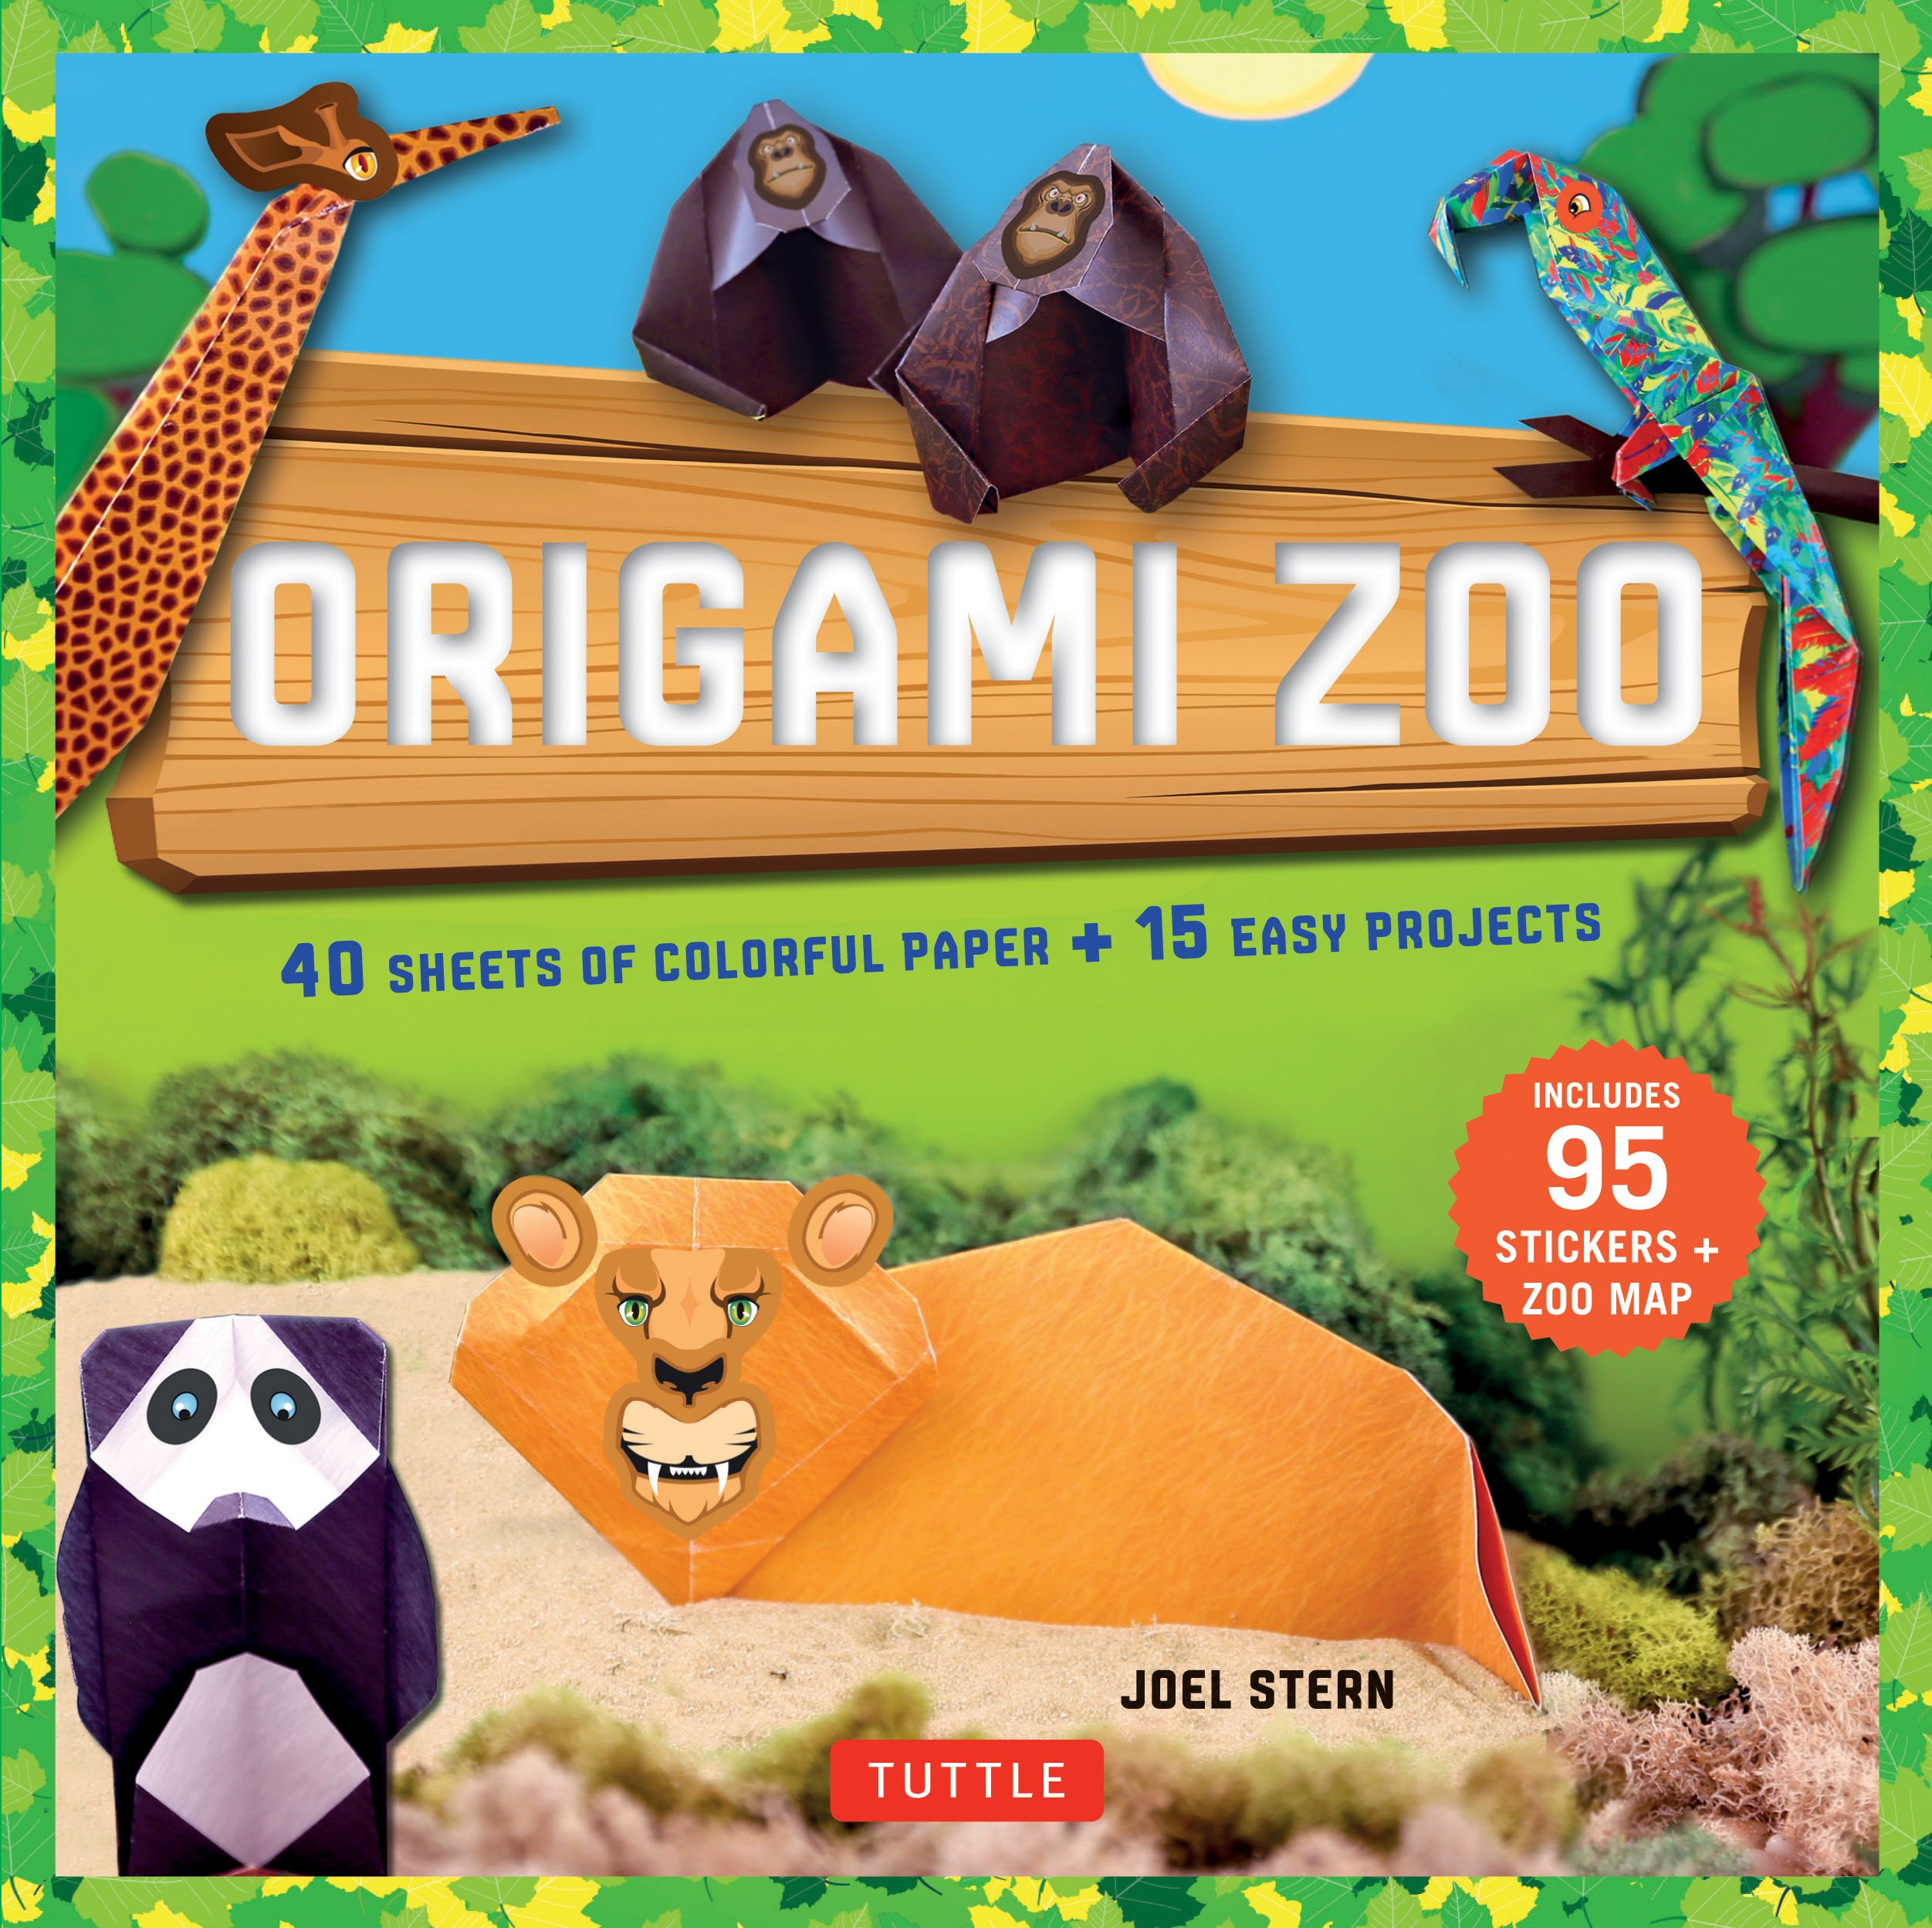 Origami Animals for Kids Step by Step - How to Make an Origami ... | 2498x2503